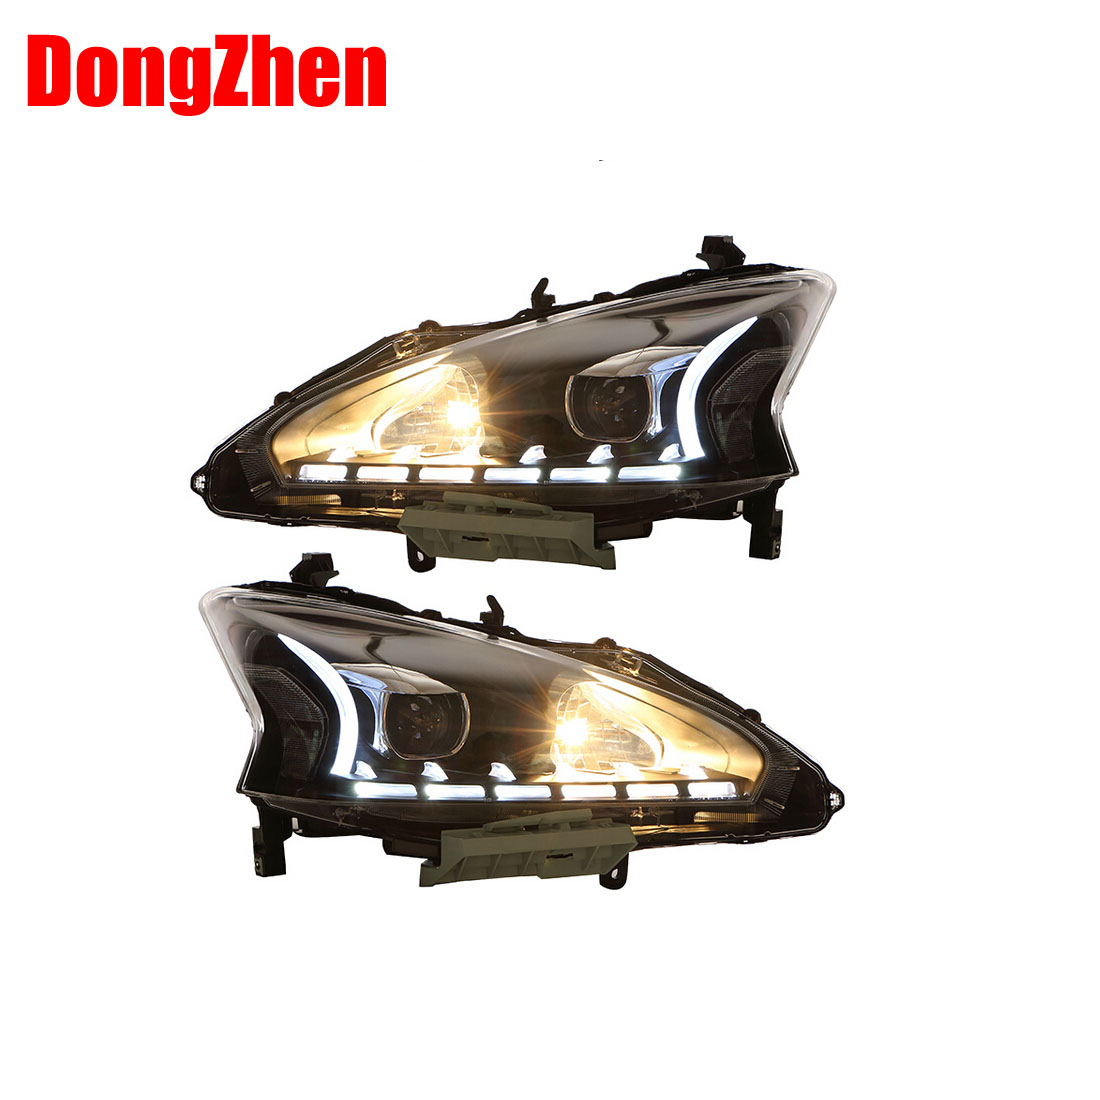 DongZhen car styling For Nissan Teana 2013-2015 headlights DRL  Teana LED light bar DRL xenon lens h7 xenon car styling<br><br>Aliexpress